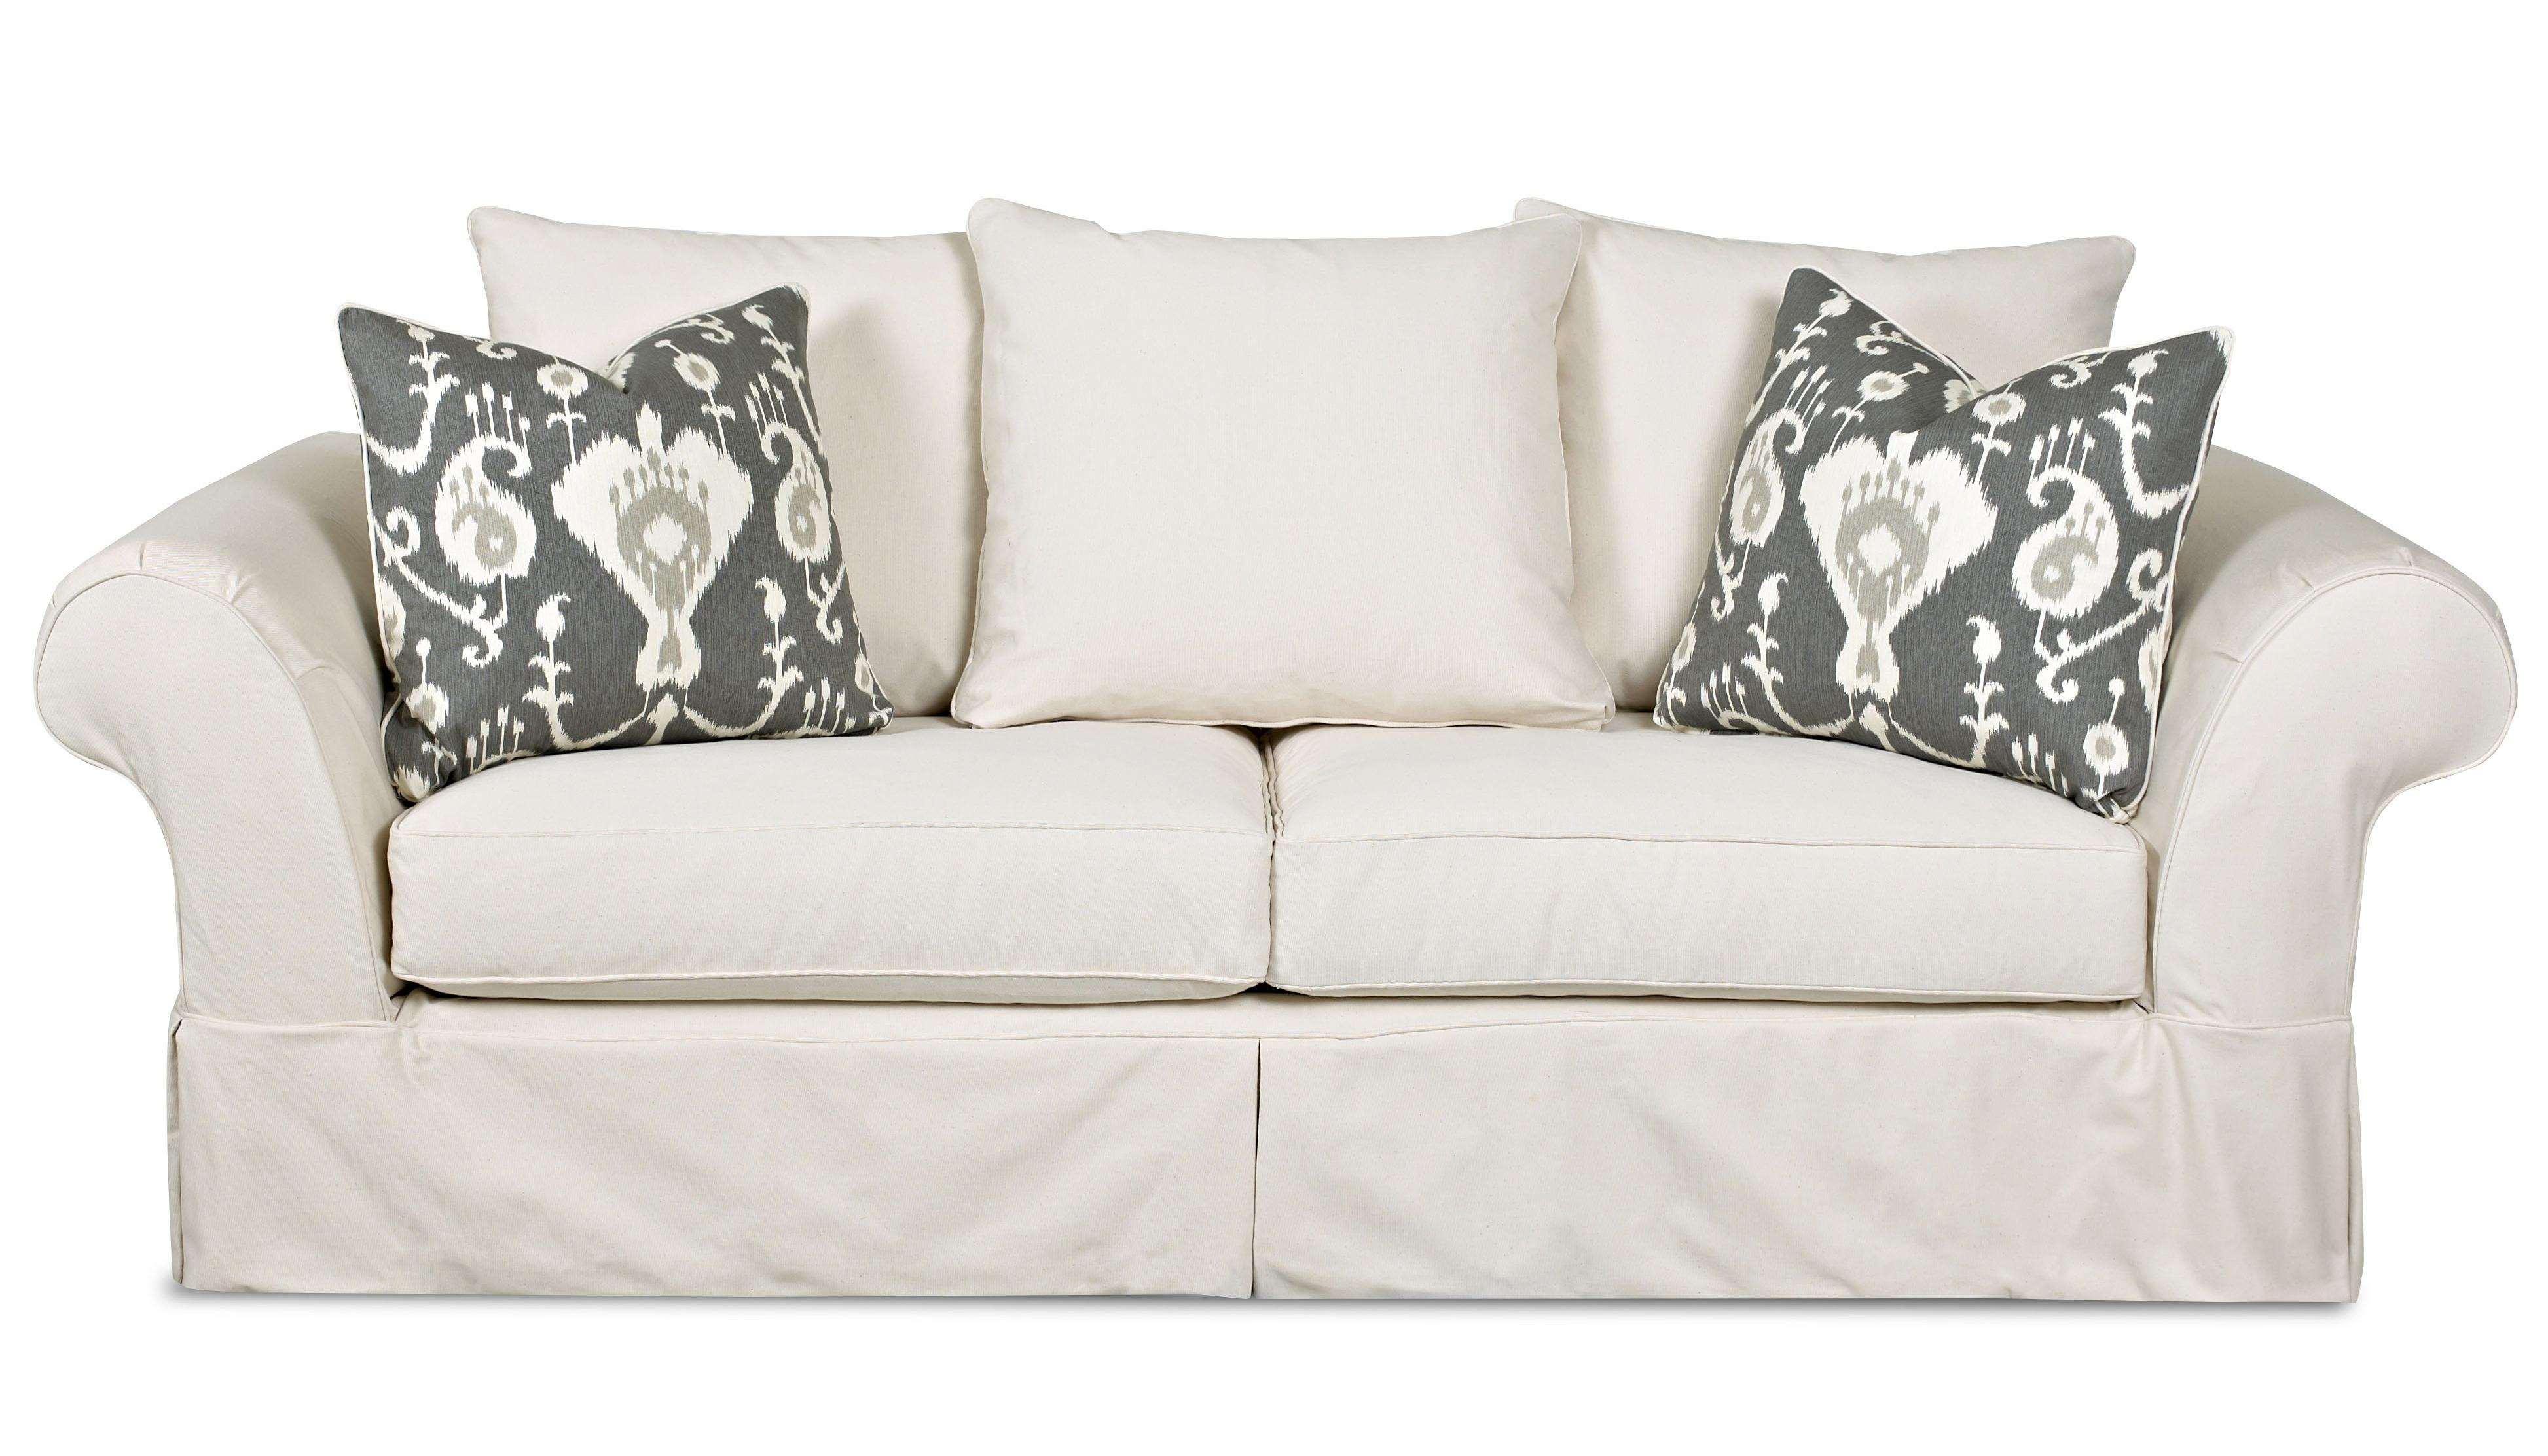 sofa deals nj oatmeal klaussner charleston with scatterback pillows and